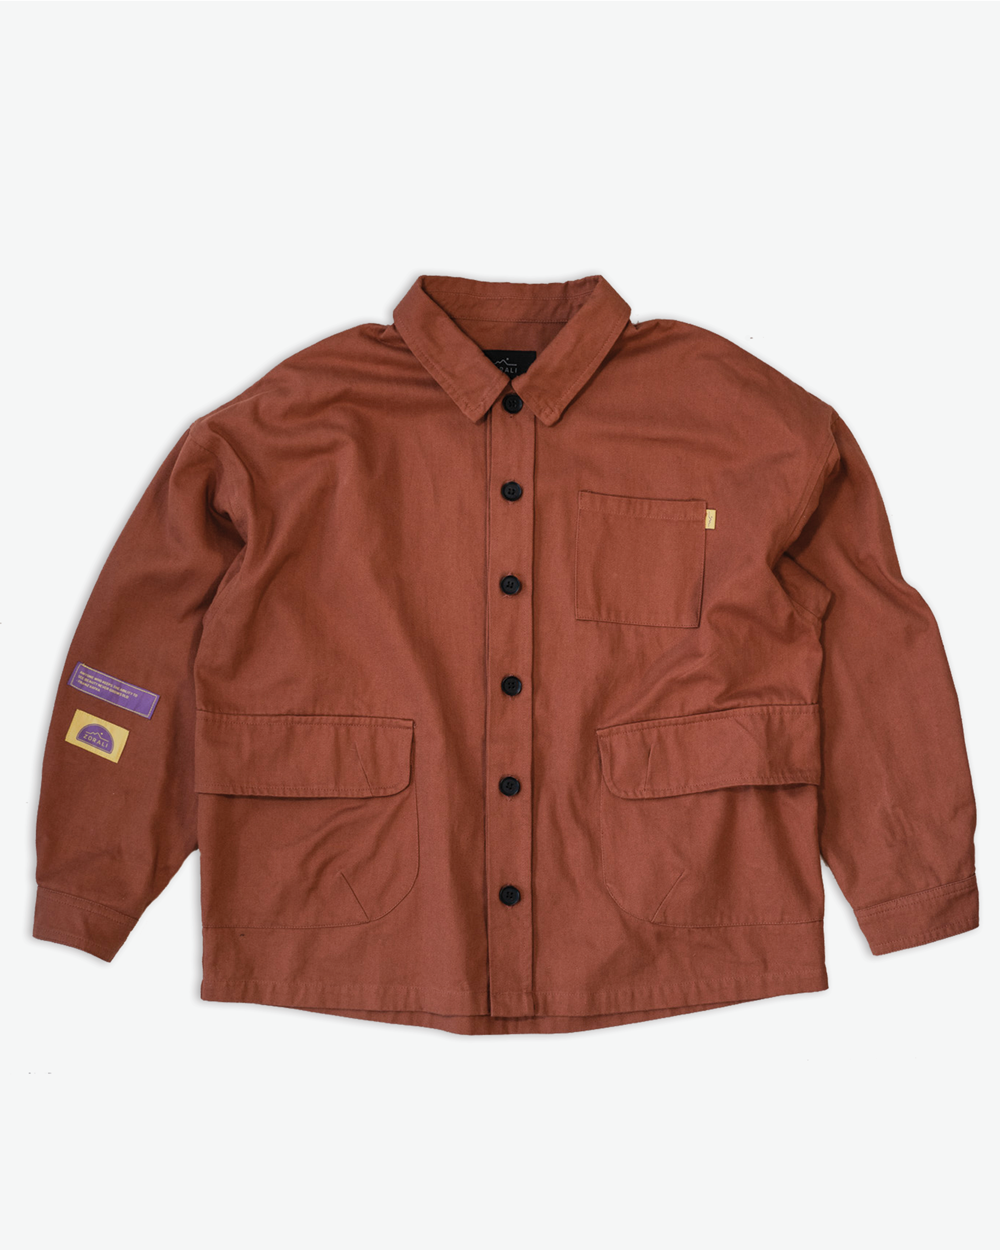 Zorali-Womens-Camp-Jacket-2.png